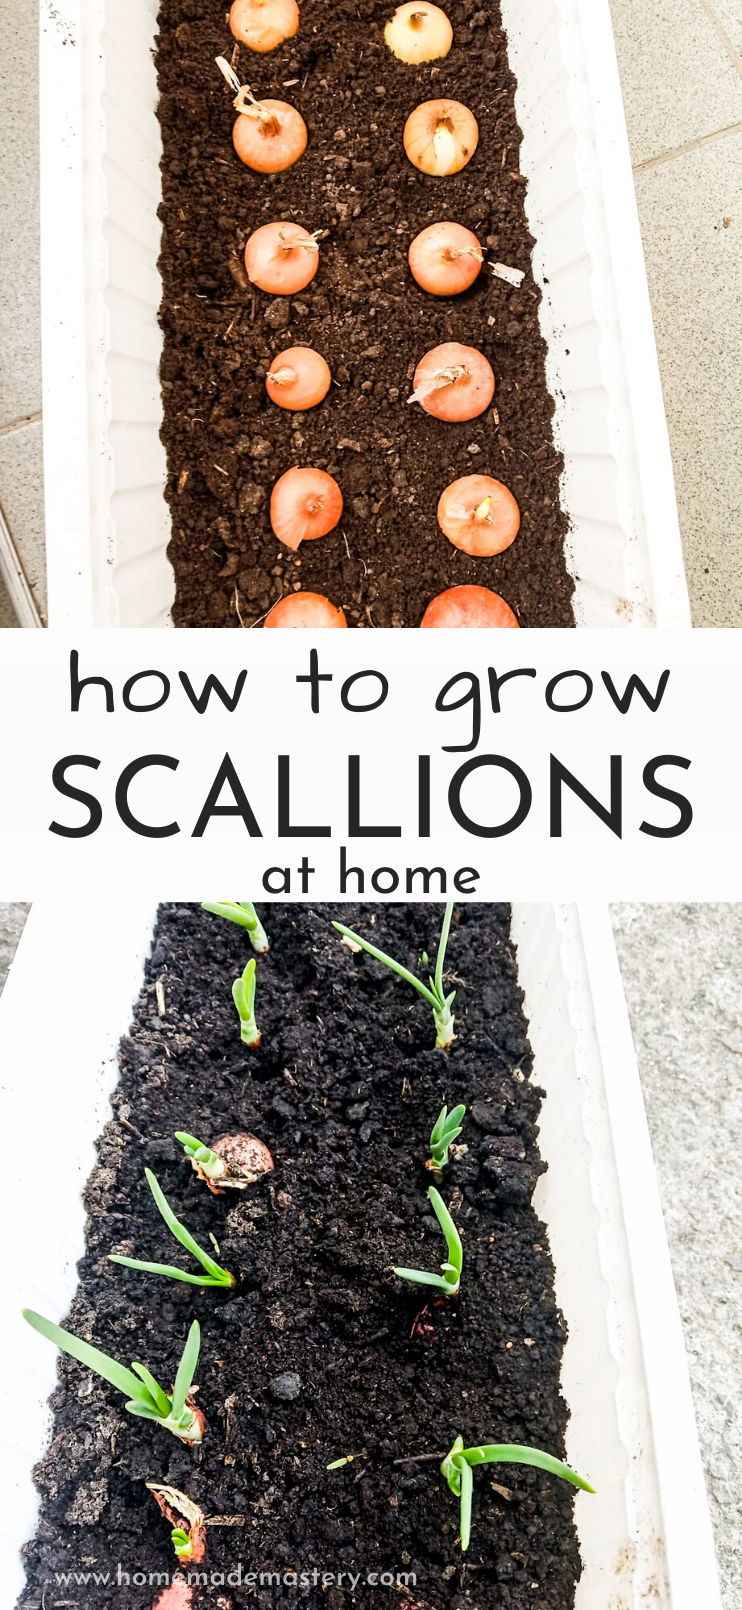 Growing vegetables at home is easy - today, let's learn how to grow green onions at home from bulbs in containers! Planting and growing scallions is easy and done in 6 easy steps. This is a simple step by step gardening for beginners tutorial that you need to follow if you want to have fresh green onions at home most of the time.